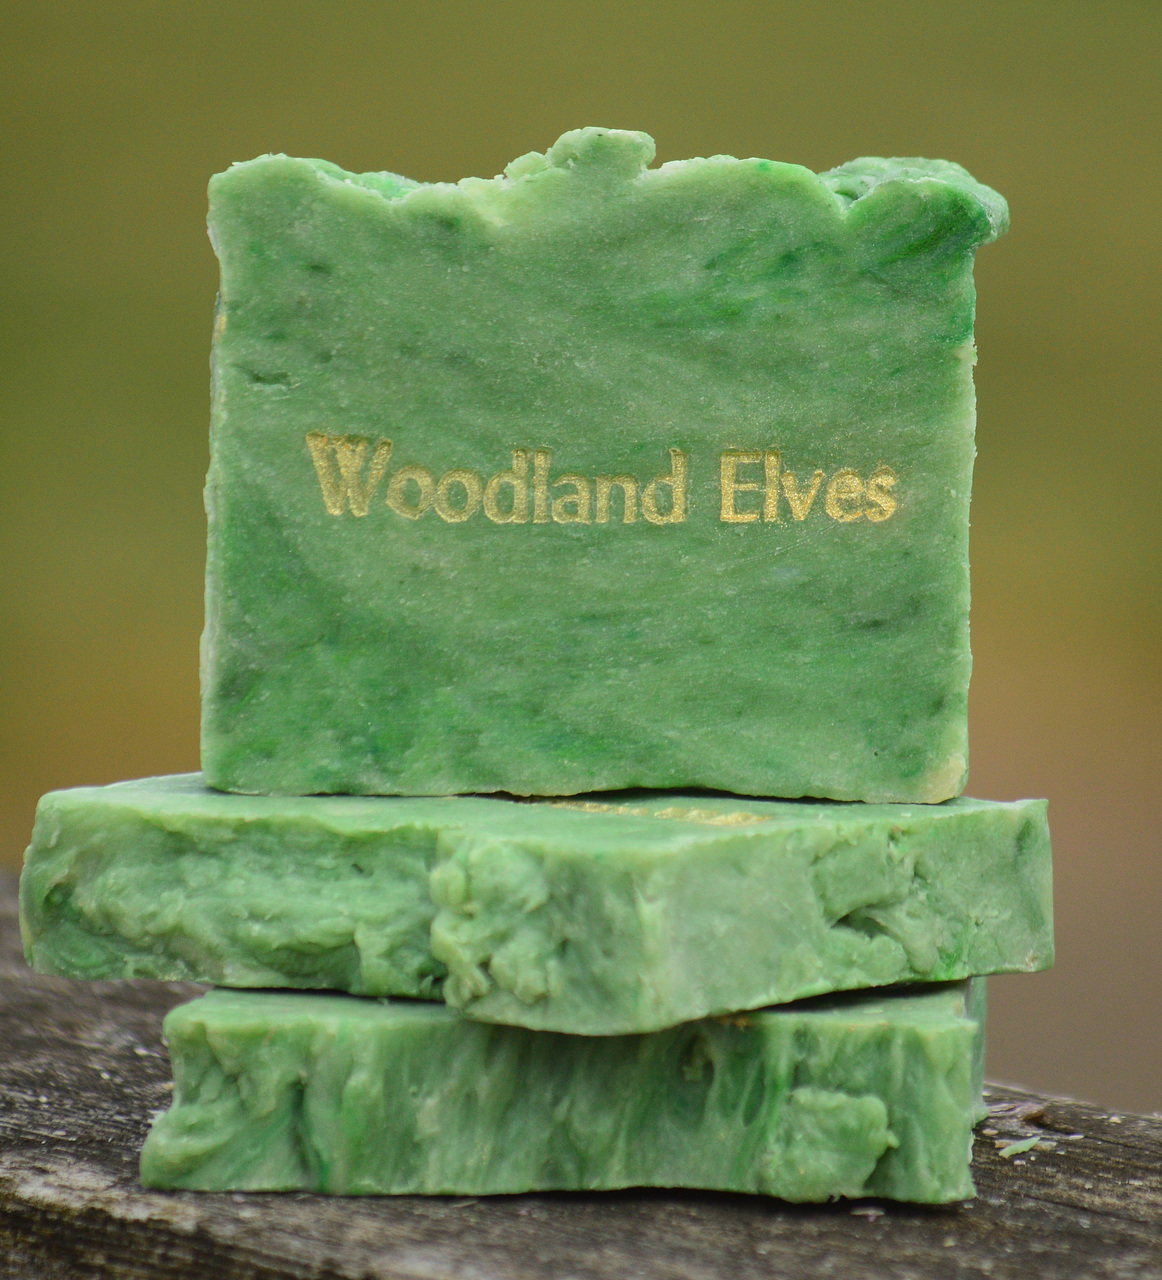 Woodland Elves Goat Milk Soap Slice